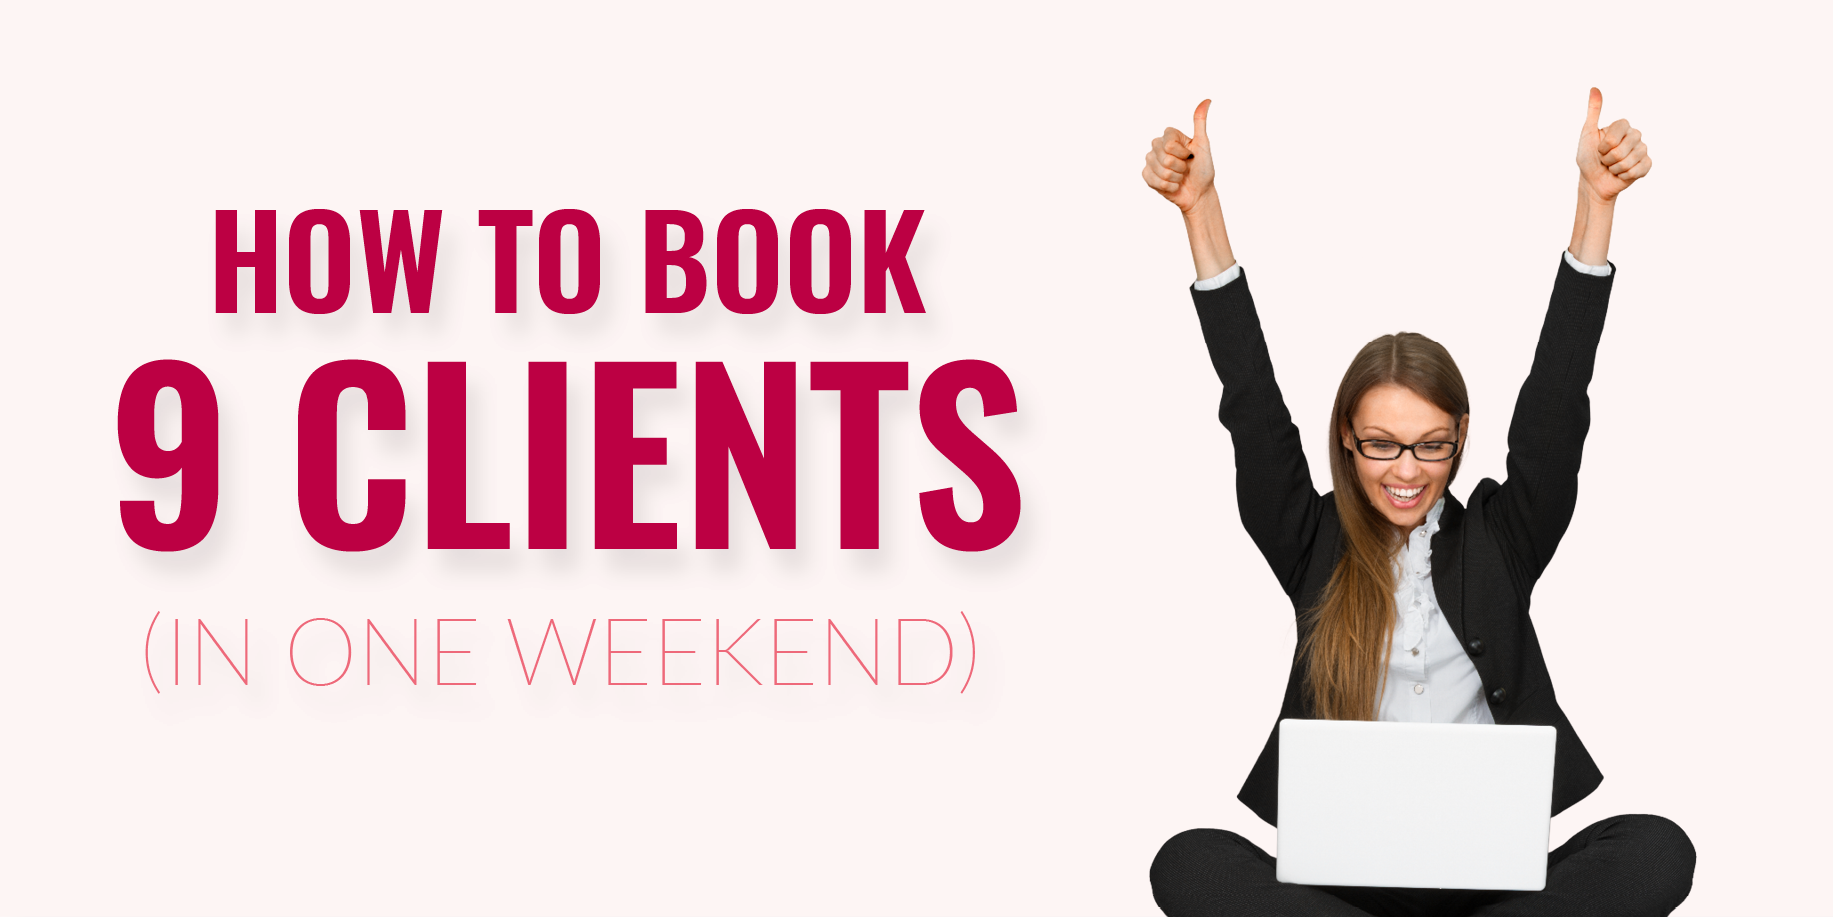 How To Book 9 Clients In A Single Weekend! Via @mirandanahmias